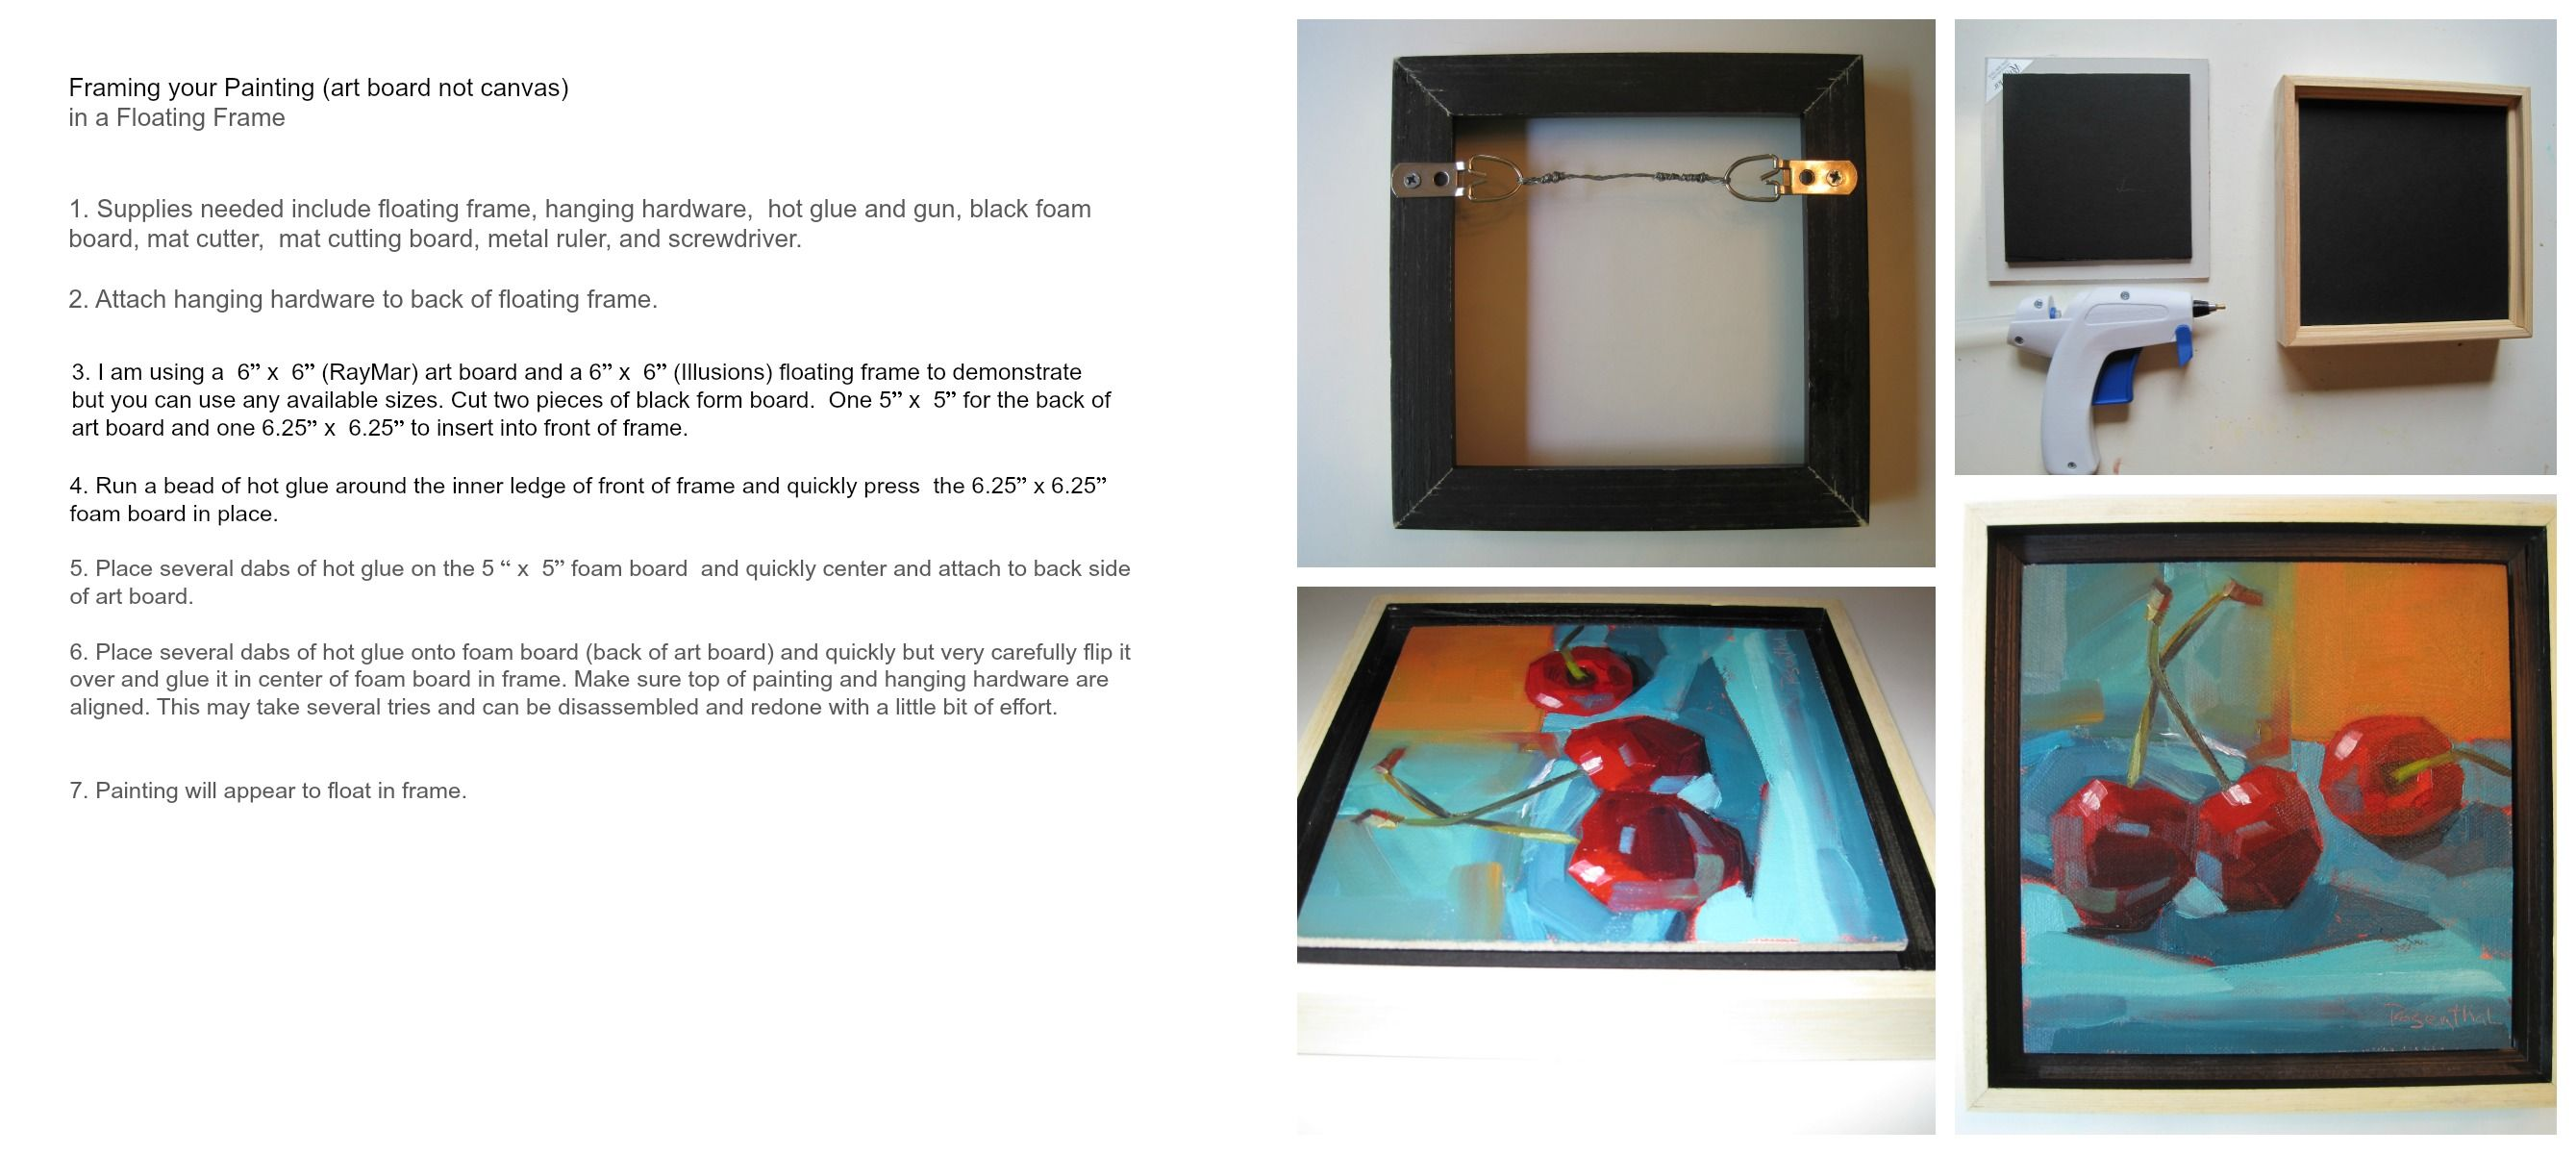 Framing your Painting (art board not canvas) in a Floating Frame ...